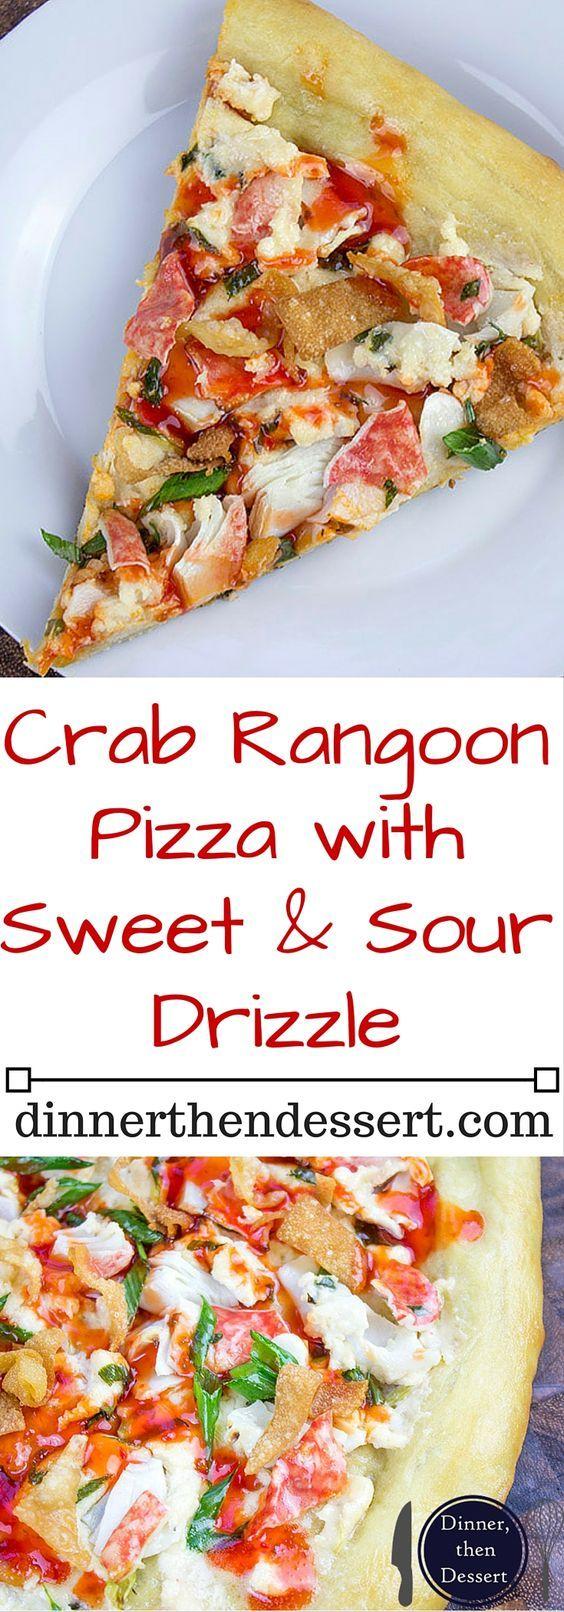 """This Crab Wonton Pizza with Sweet & Sour Drizzle is the answer to """"Pizza or Chinese?"""" and in the best possible way because you can make it at home! Crunchy, creamy, sweet and sour you'll find yourselves fighting over the last slice! LKDelights AD"""